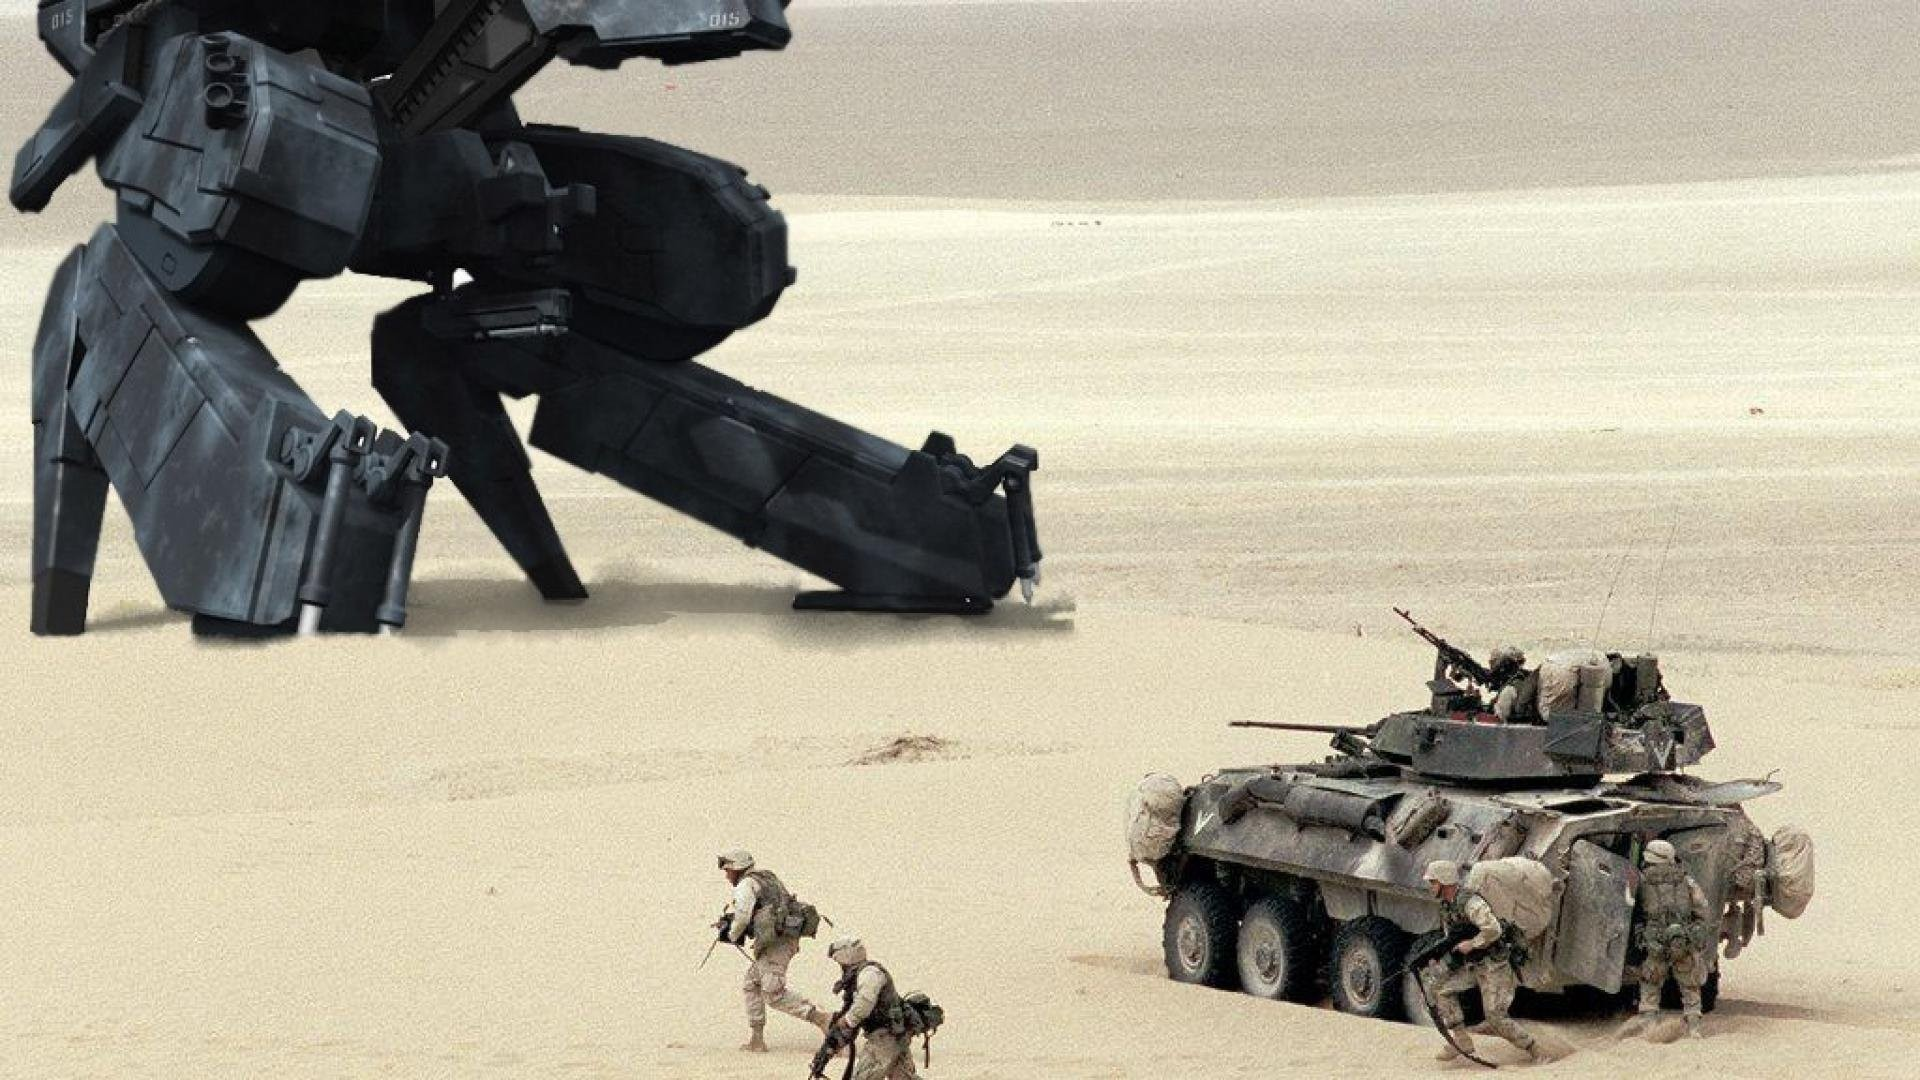 Army desktop wallpaper 63 images - Awesome army wallpapers ...